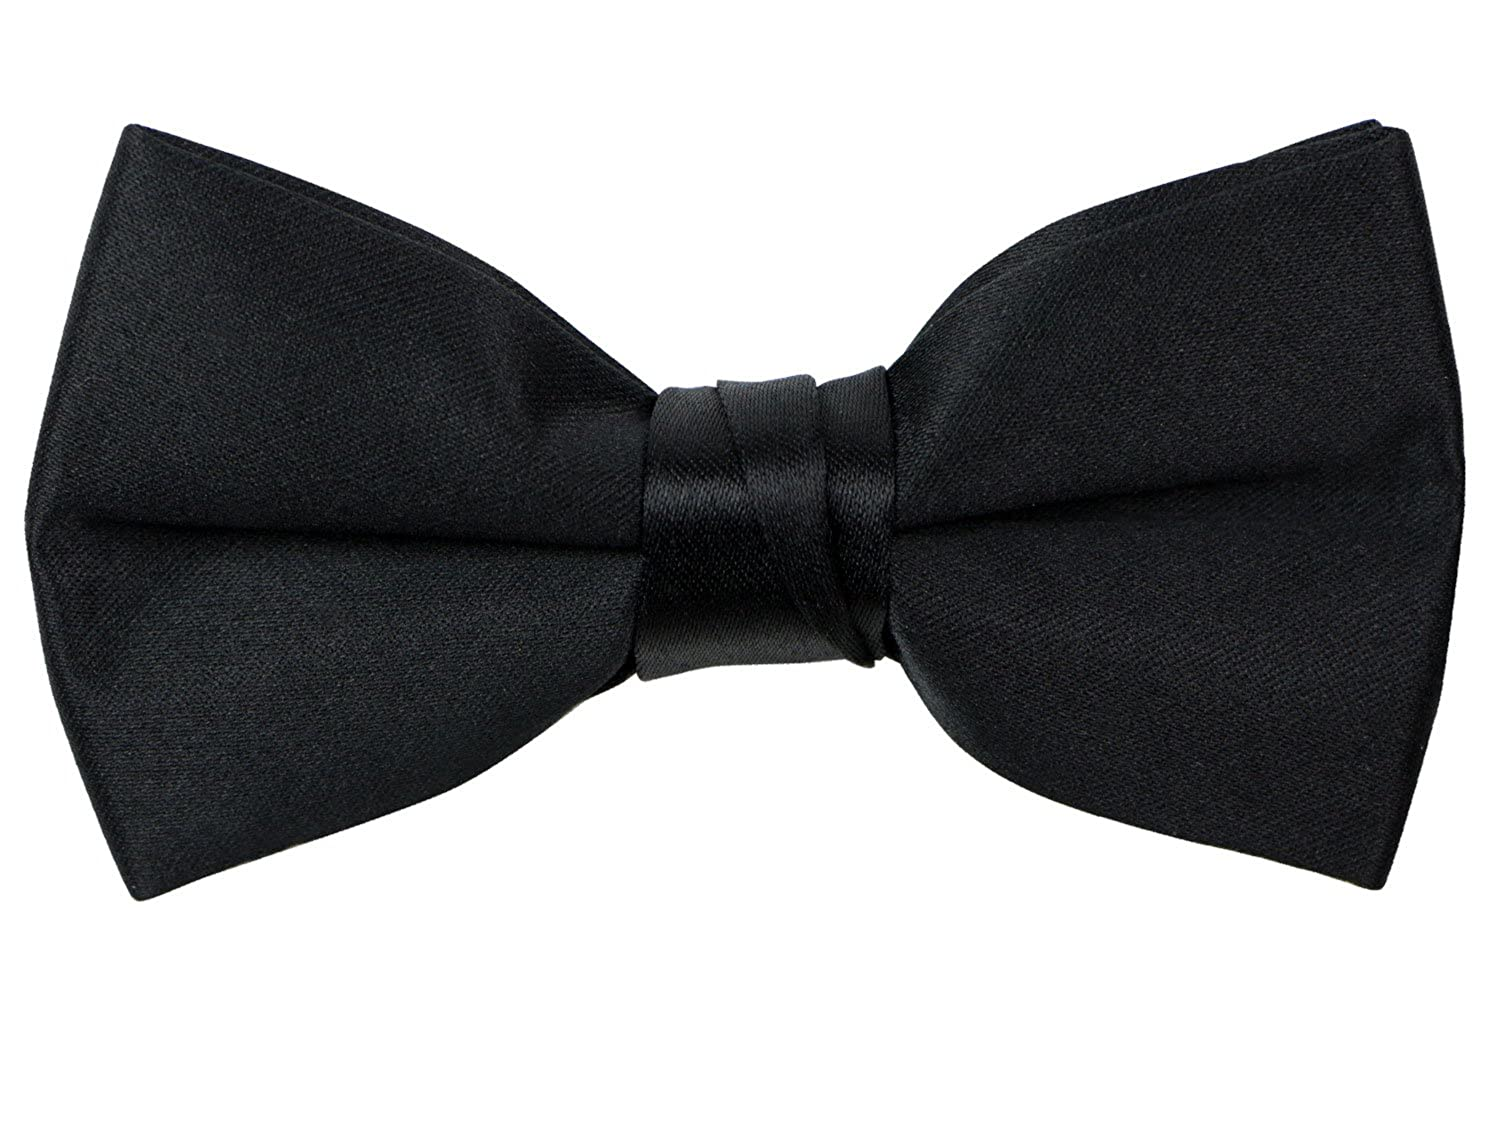 e42e07e26fcb Pre-tied satin bow tie with adjustable strap. Made with quality satin  fabric, this quality crafted bow tie will stand up to multiple use.